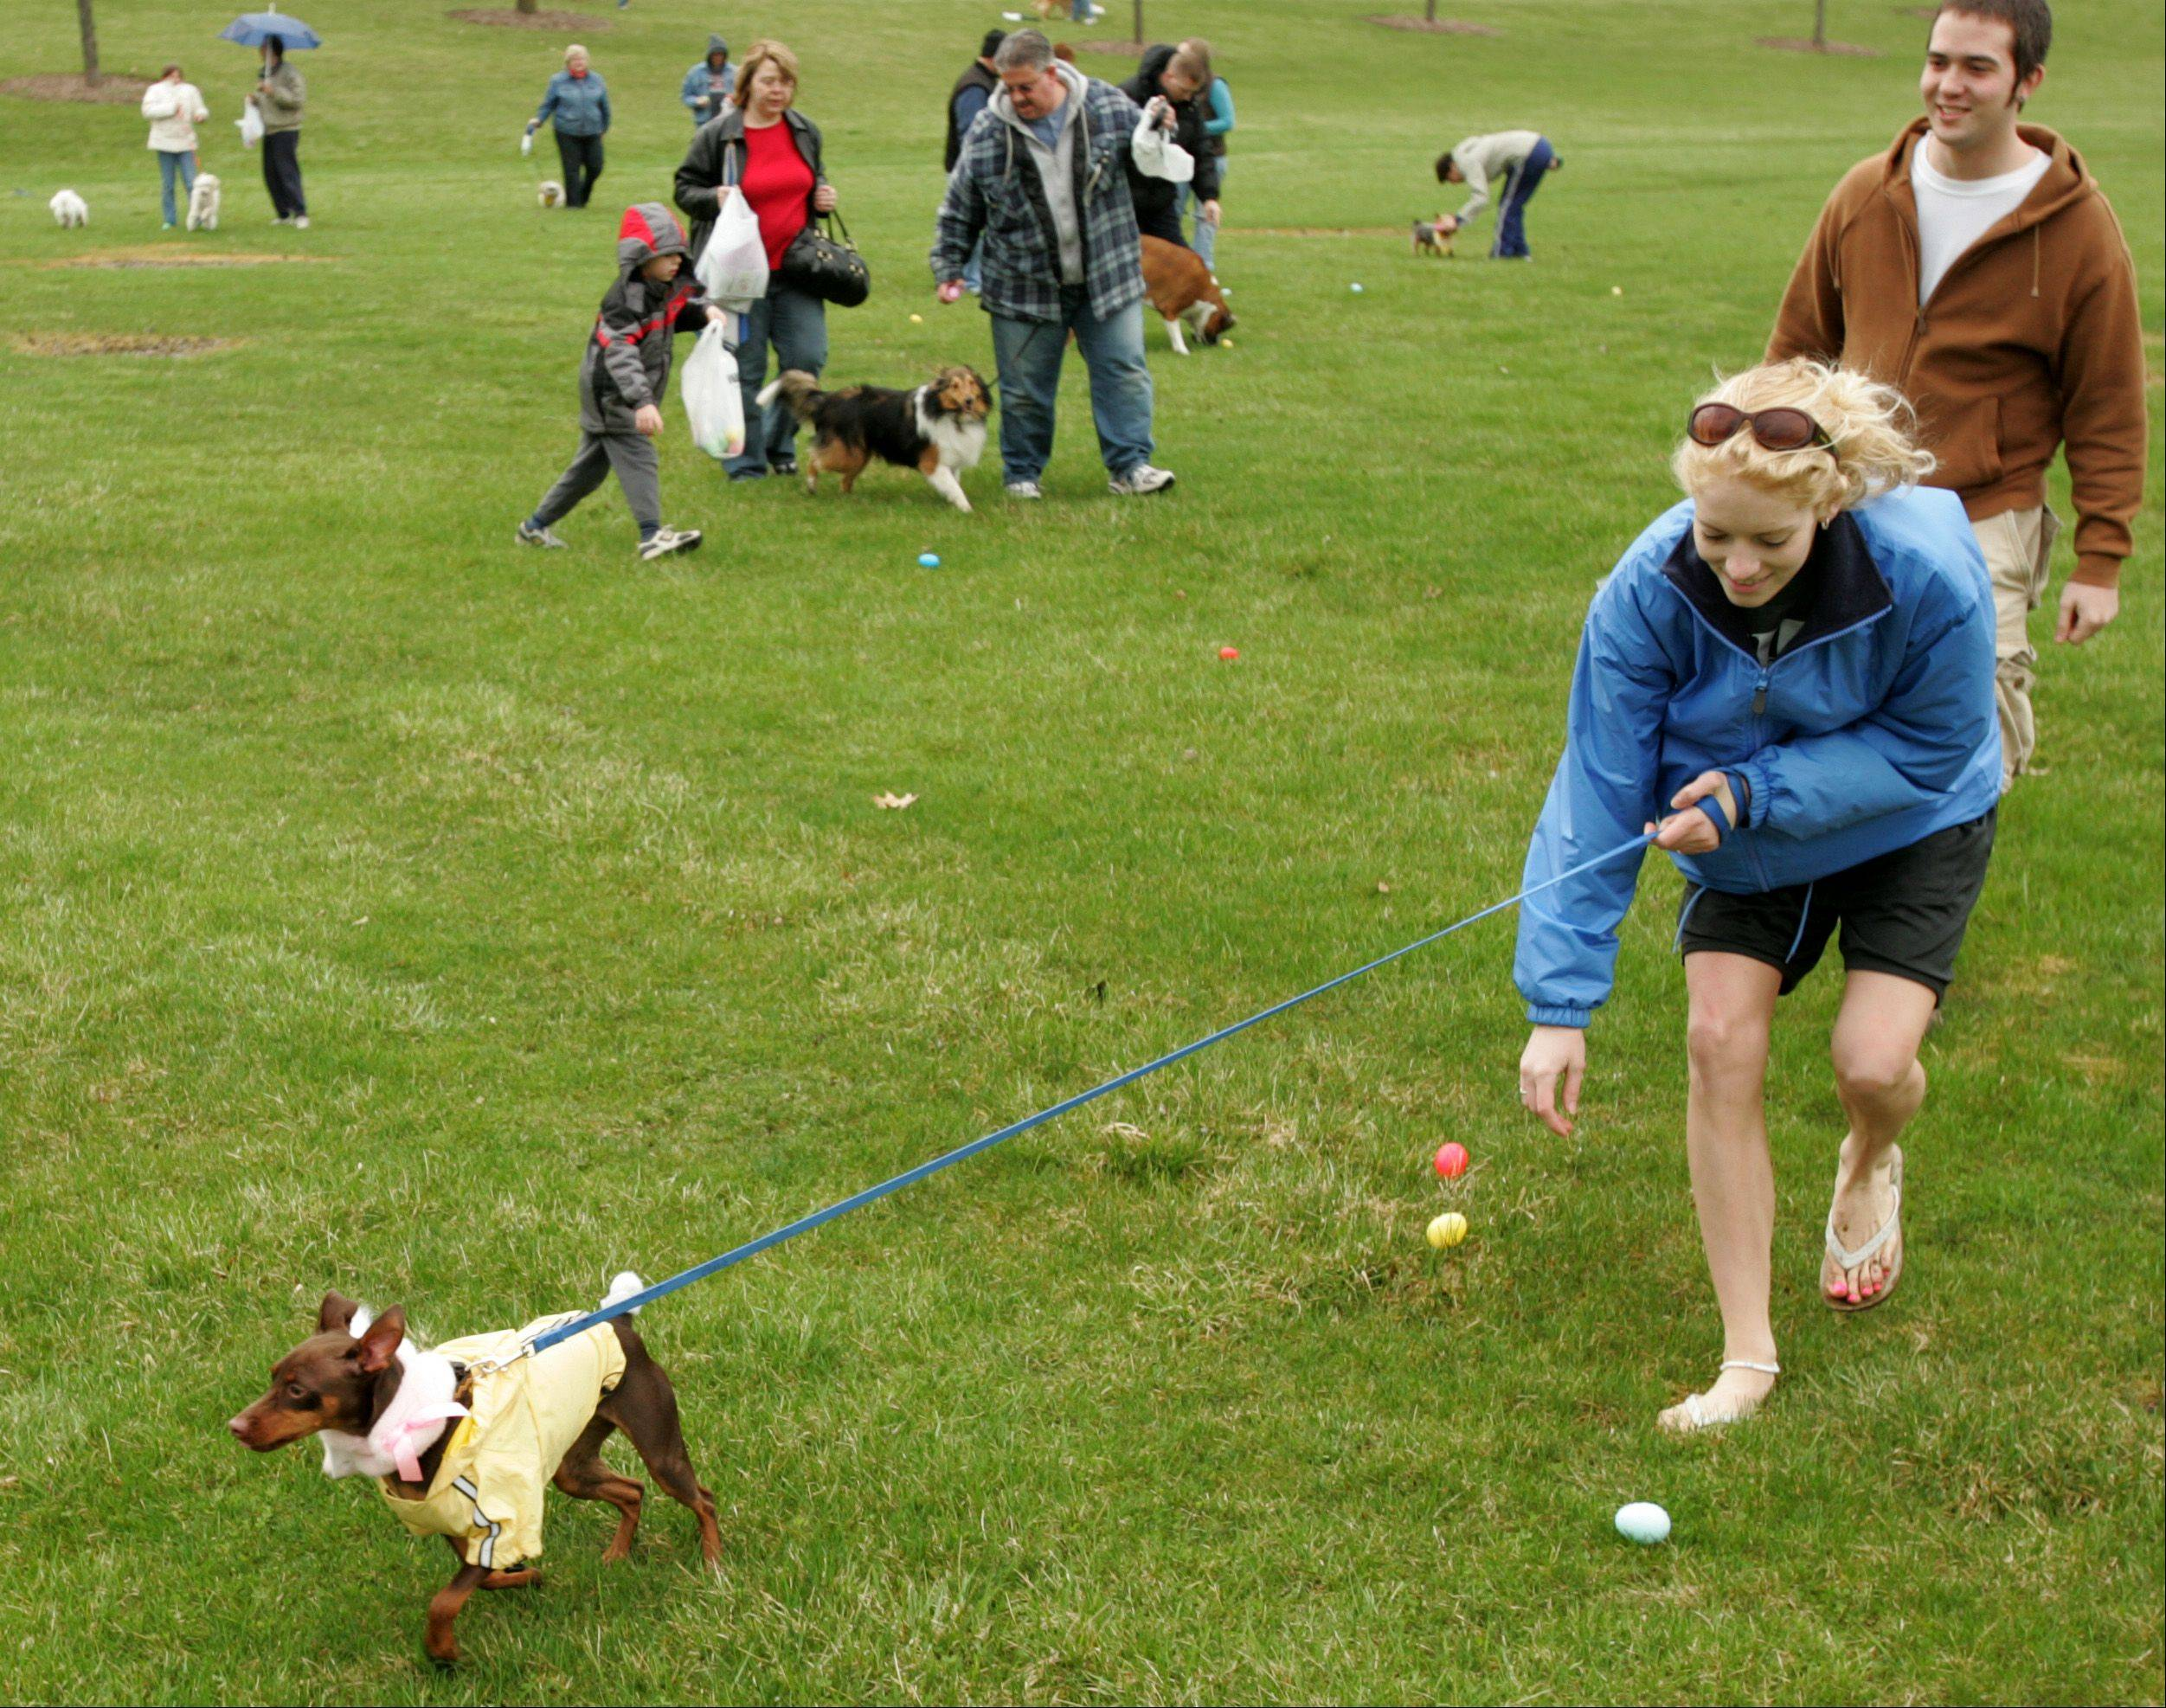 Some egg hunts on this spring's schedule even set aside time for pooches to sniff out their favorite treats.